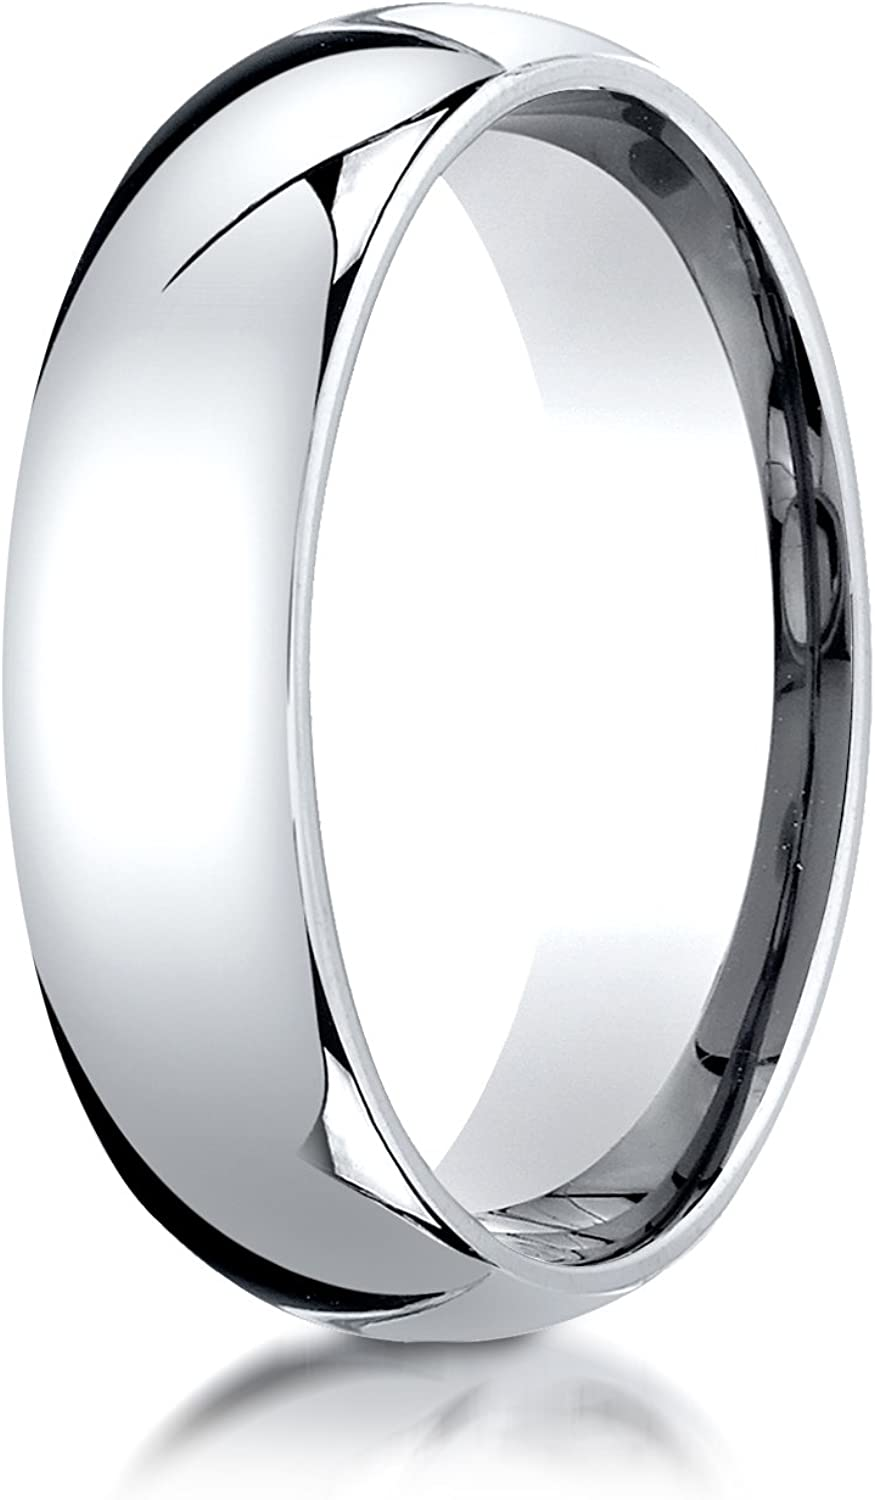 Stainless Steel /& 18K Yellow Gold inlay Domed 6.5mm Band Size 6